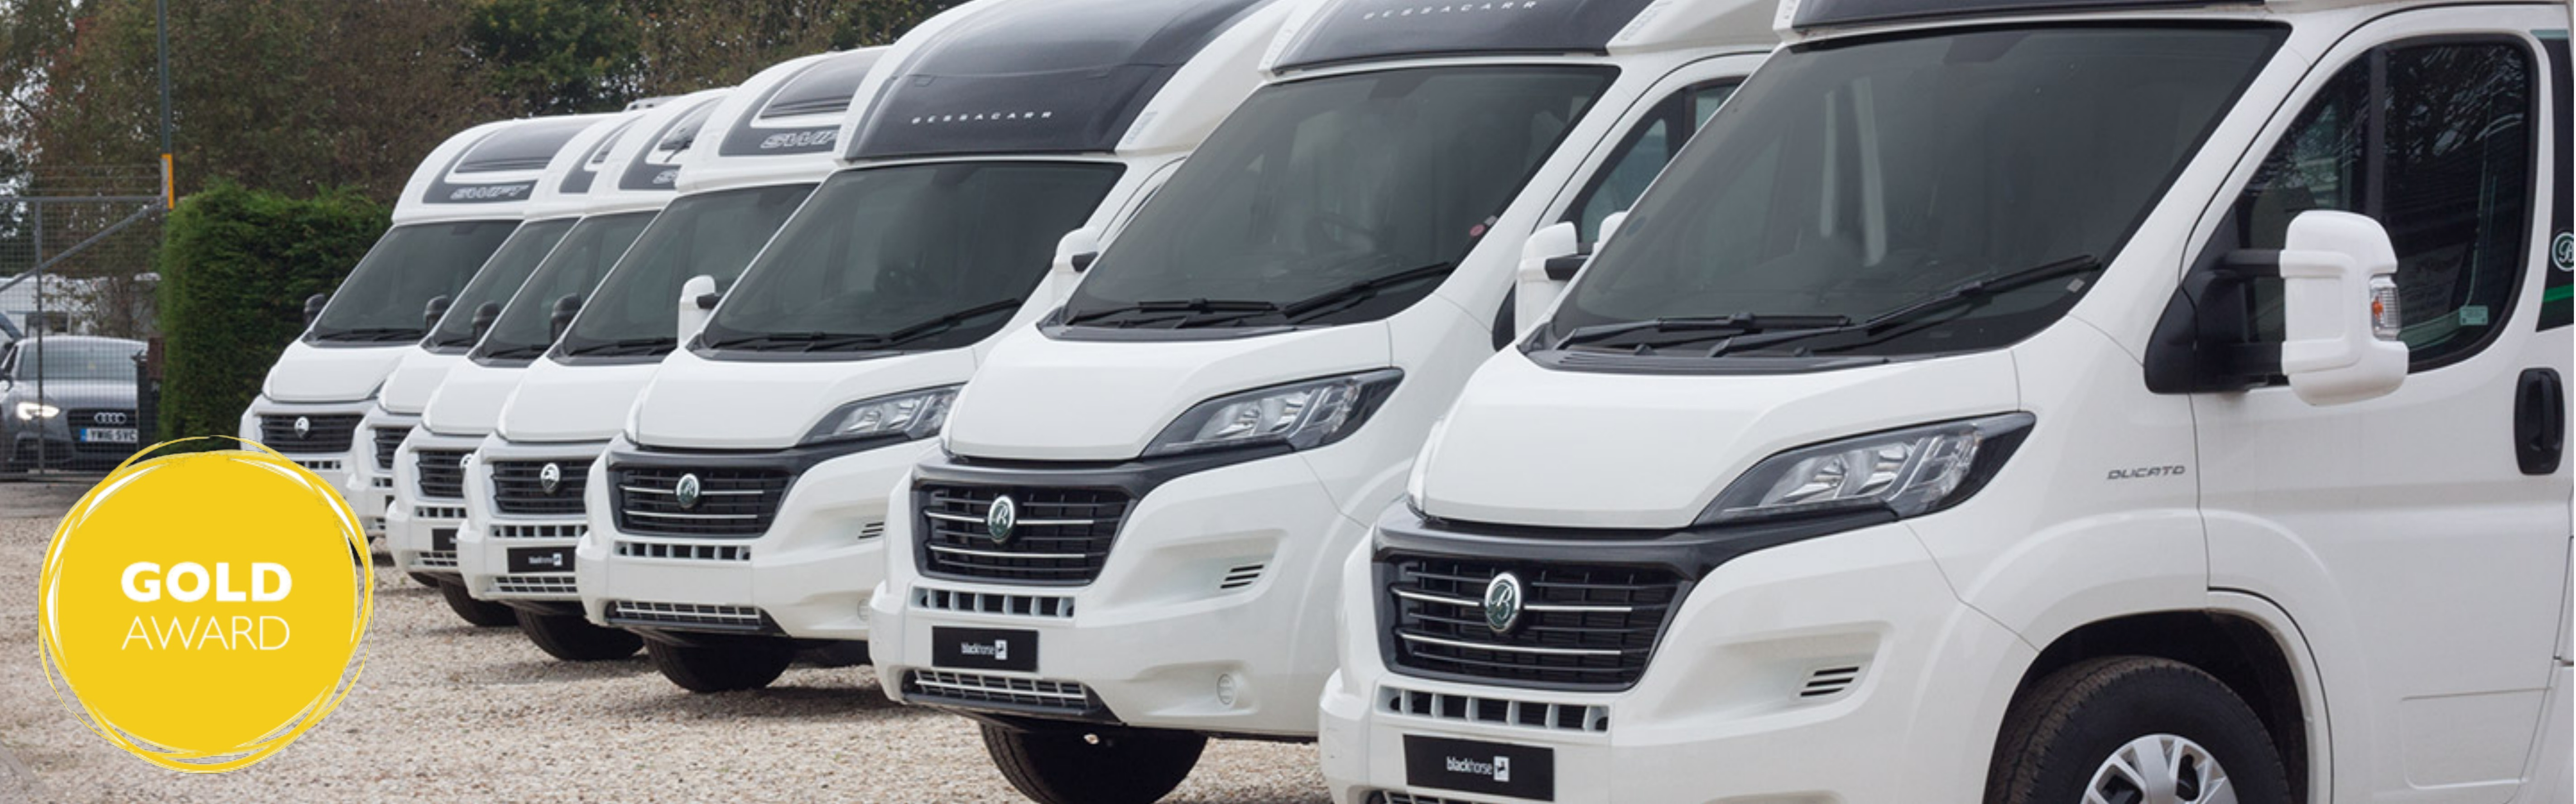 Store your new or used motorhomes at Wandahome - Block Image